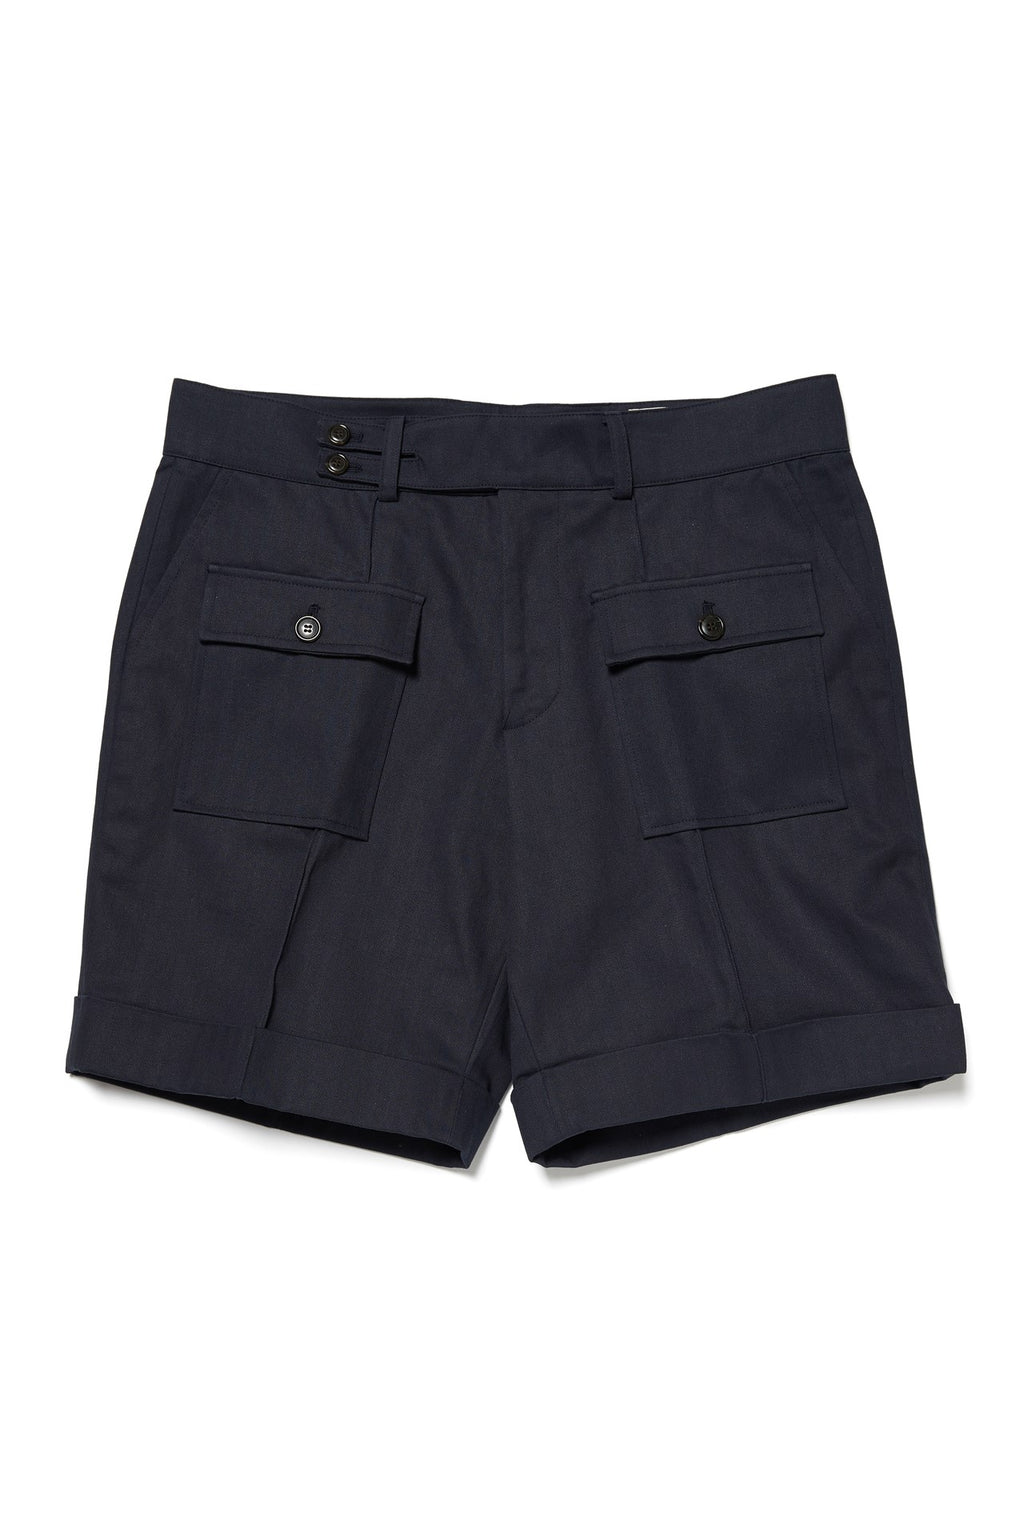 19 SS 6 POCKET SHORTS